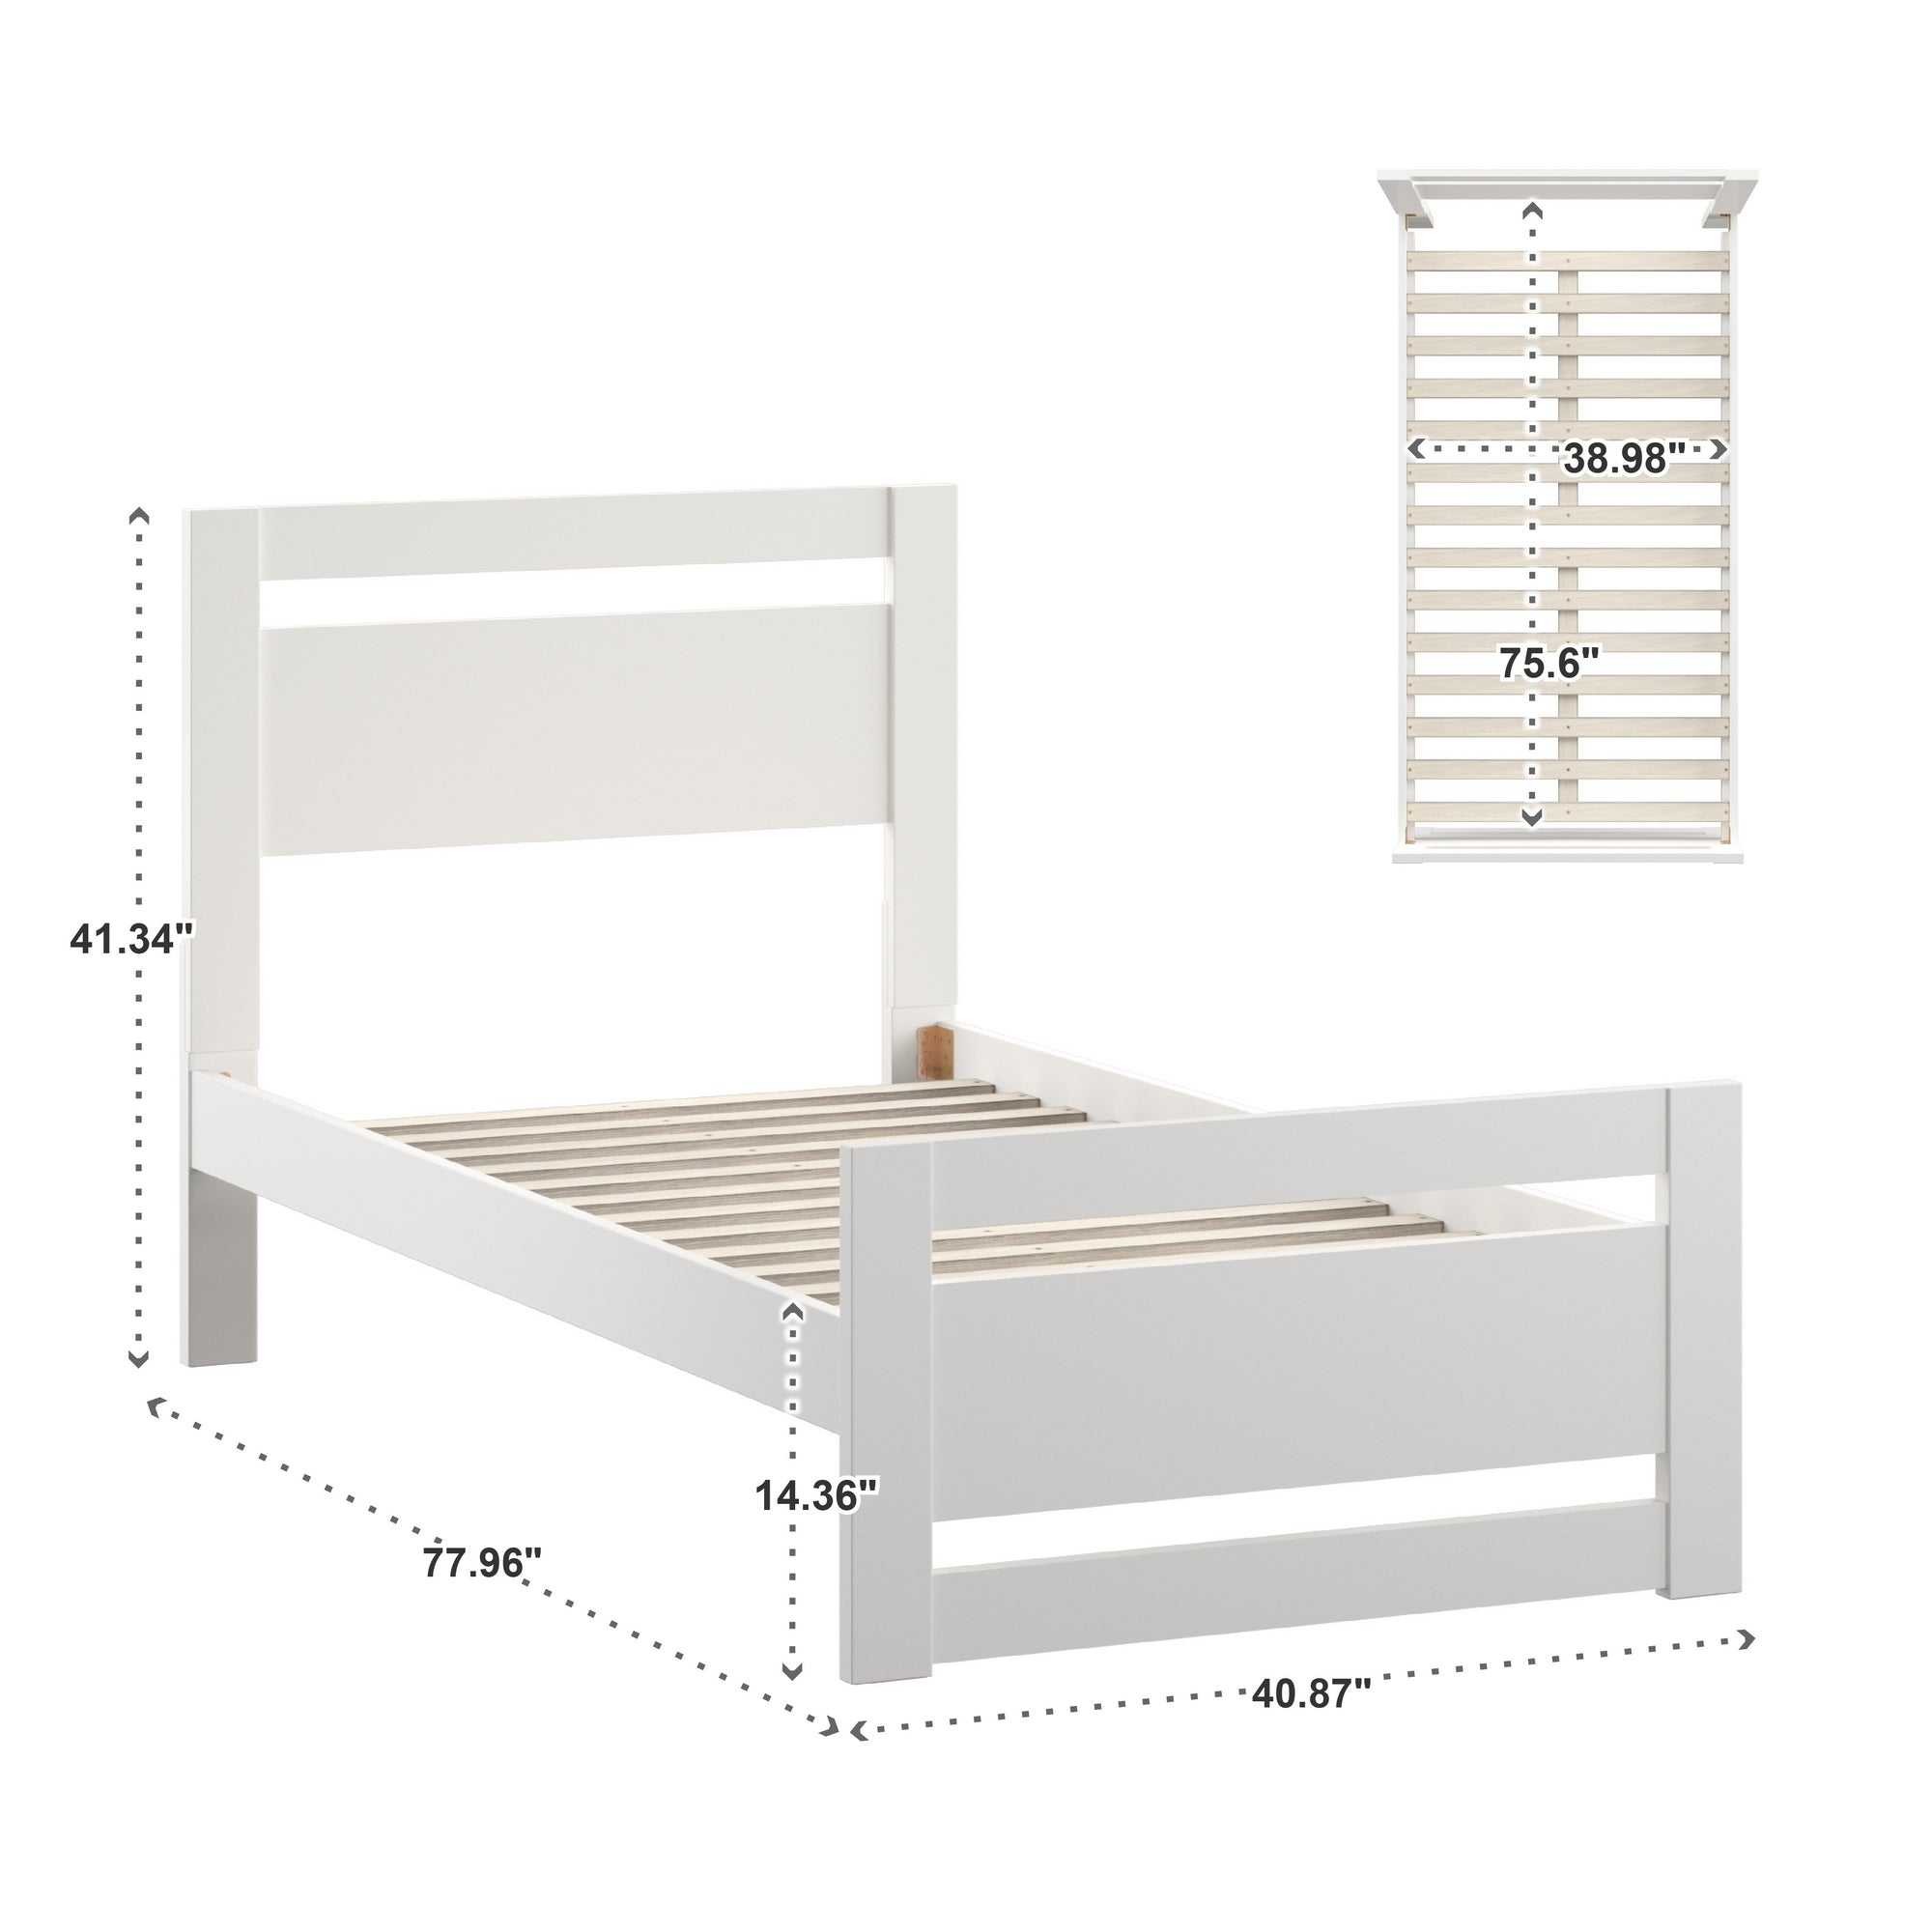 Rectangular Cutout Panel Platform Bed - White, Twin